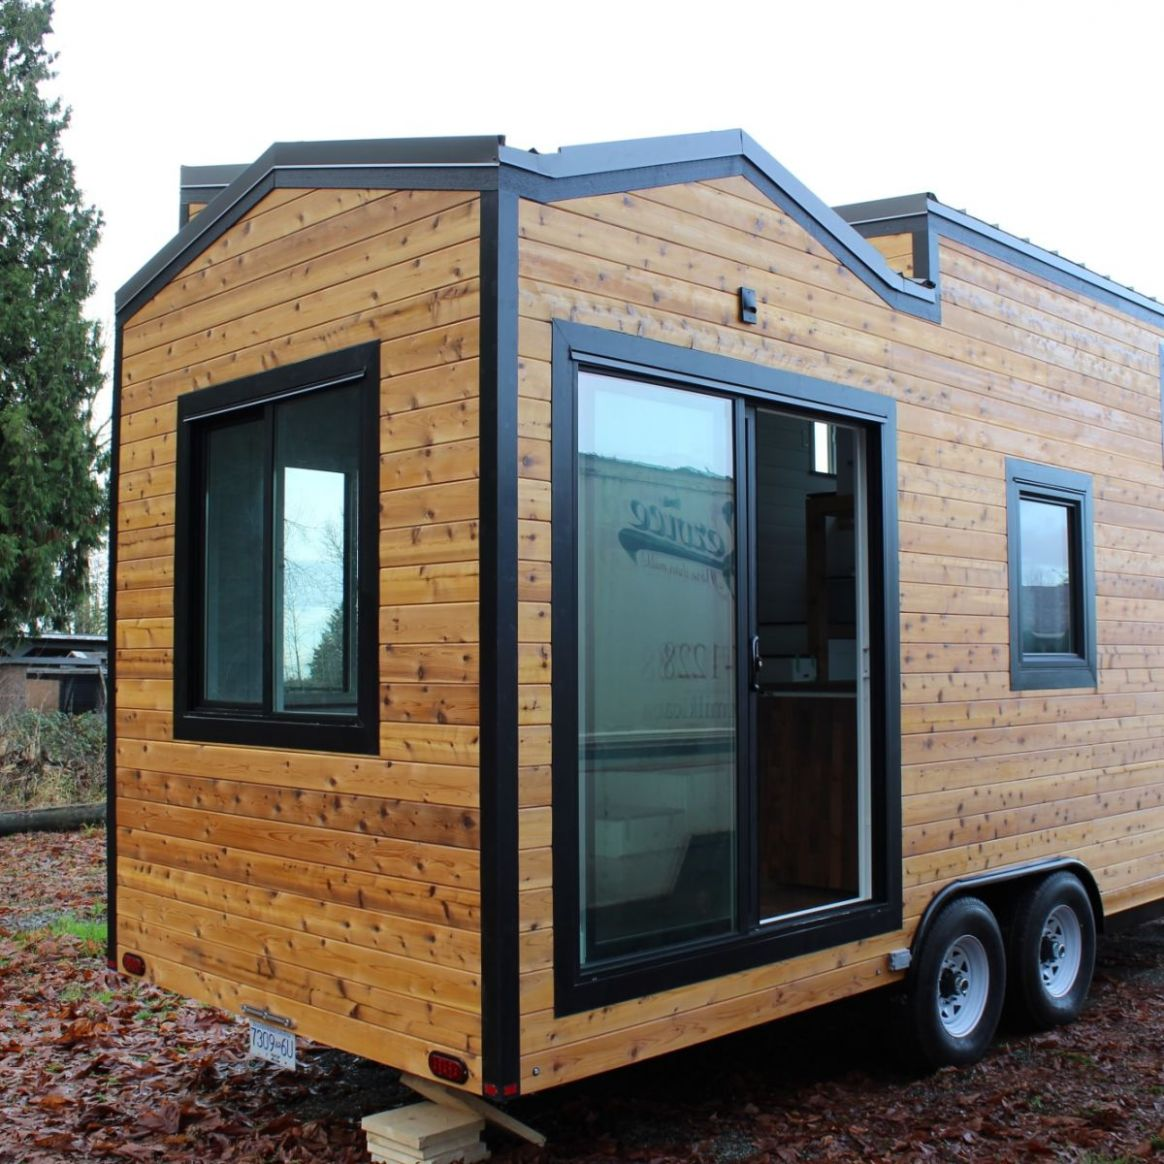 New 10' Tiny house for Sale in Vancouver BC - Tiny House for Sale in  Surrey, British Columbia - Tiny House Listings